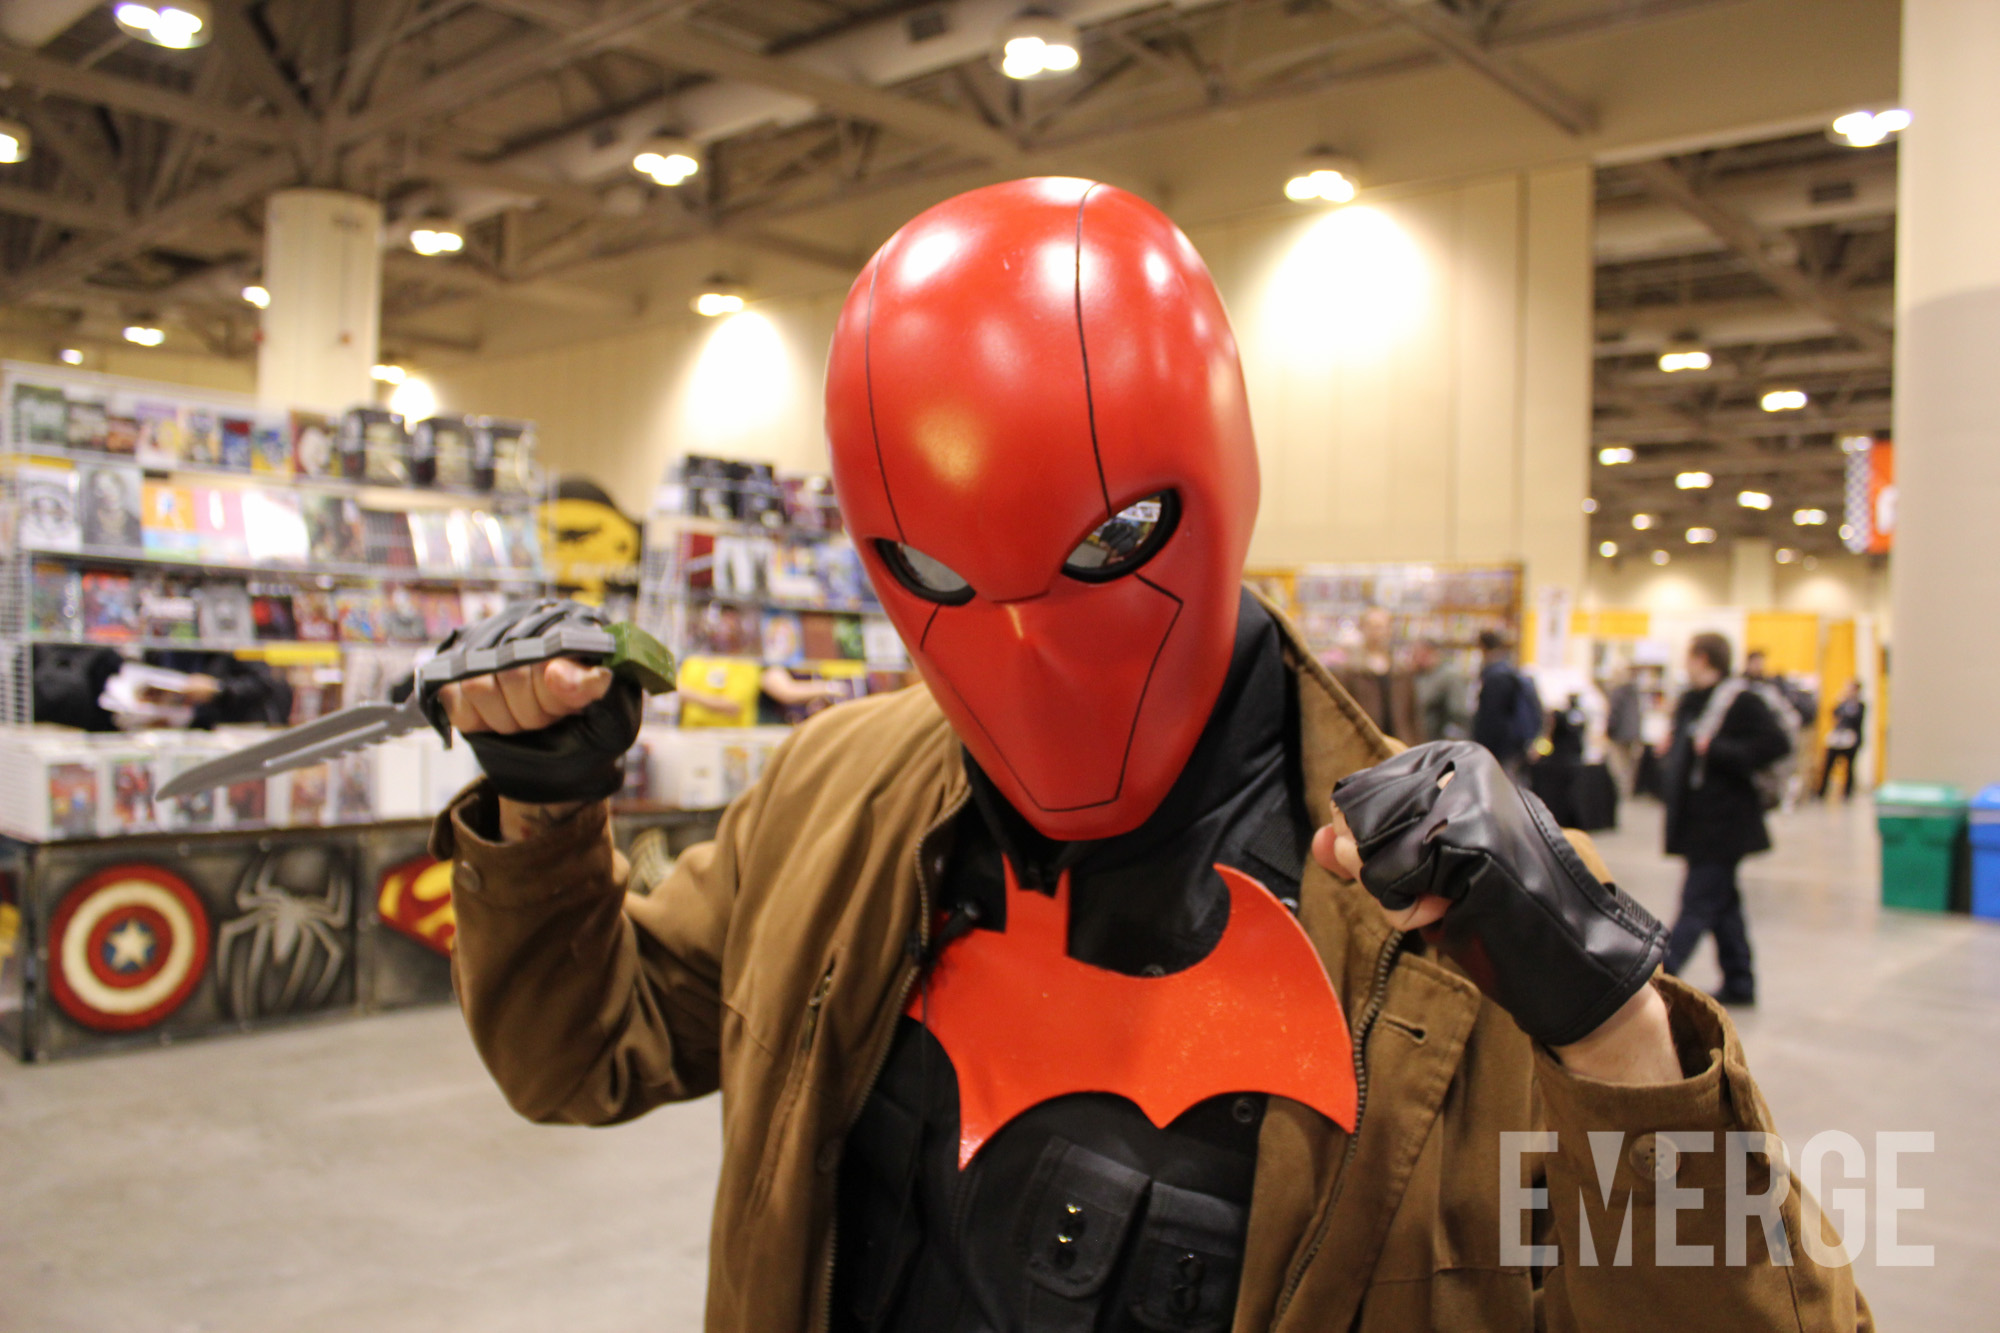 Day 1 of Toronto Comic Con started with a random encounter with Jason Todd, aka the Red Hood sporting his iconic red helmet and a casual military look.